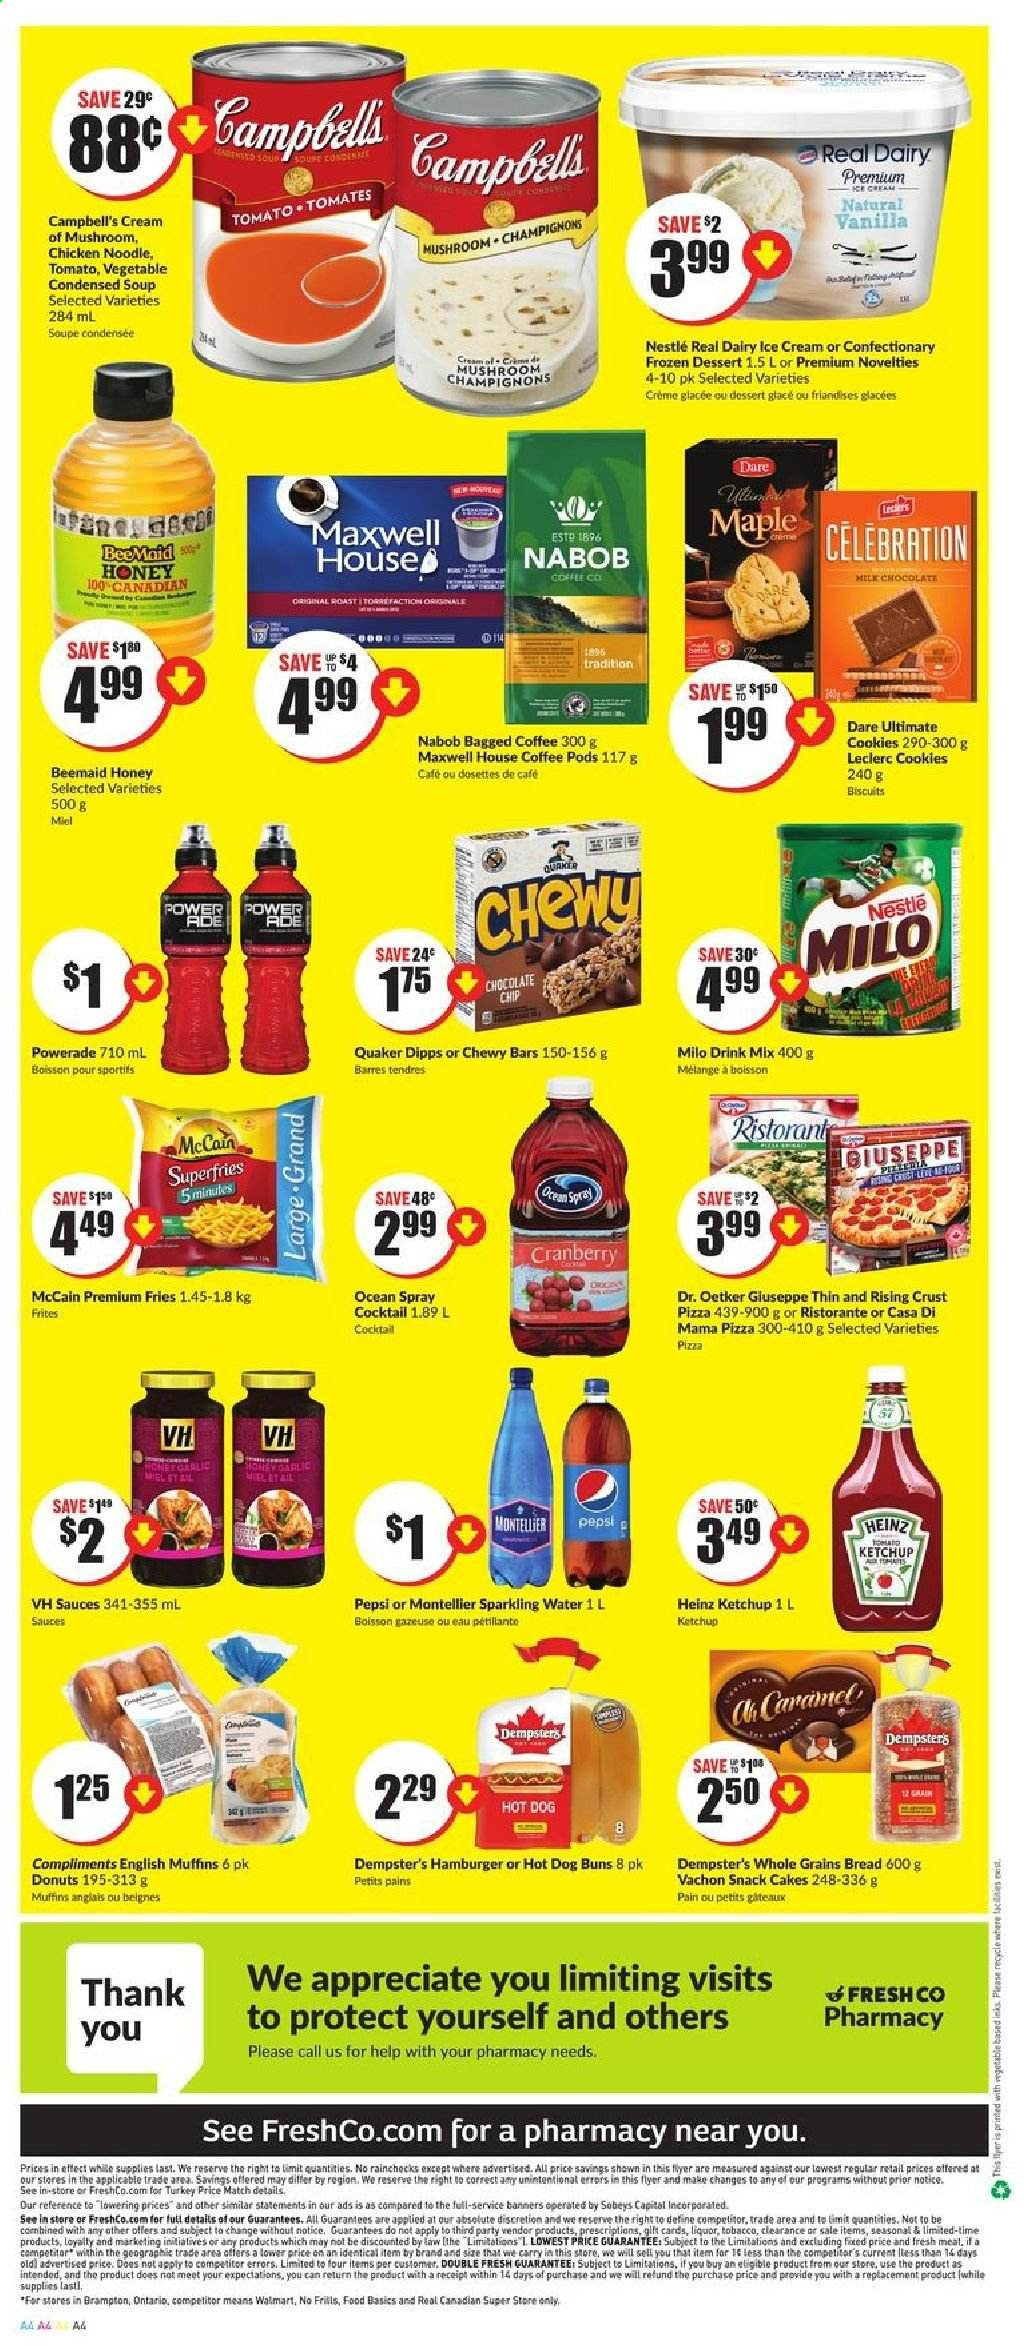 FreshCo. Flyer  - May 28, 2020 - June 03, 2020. Page 4.